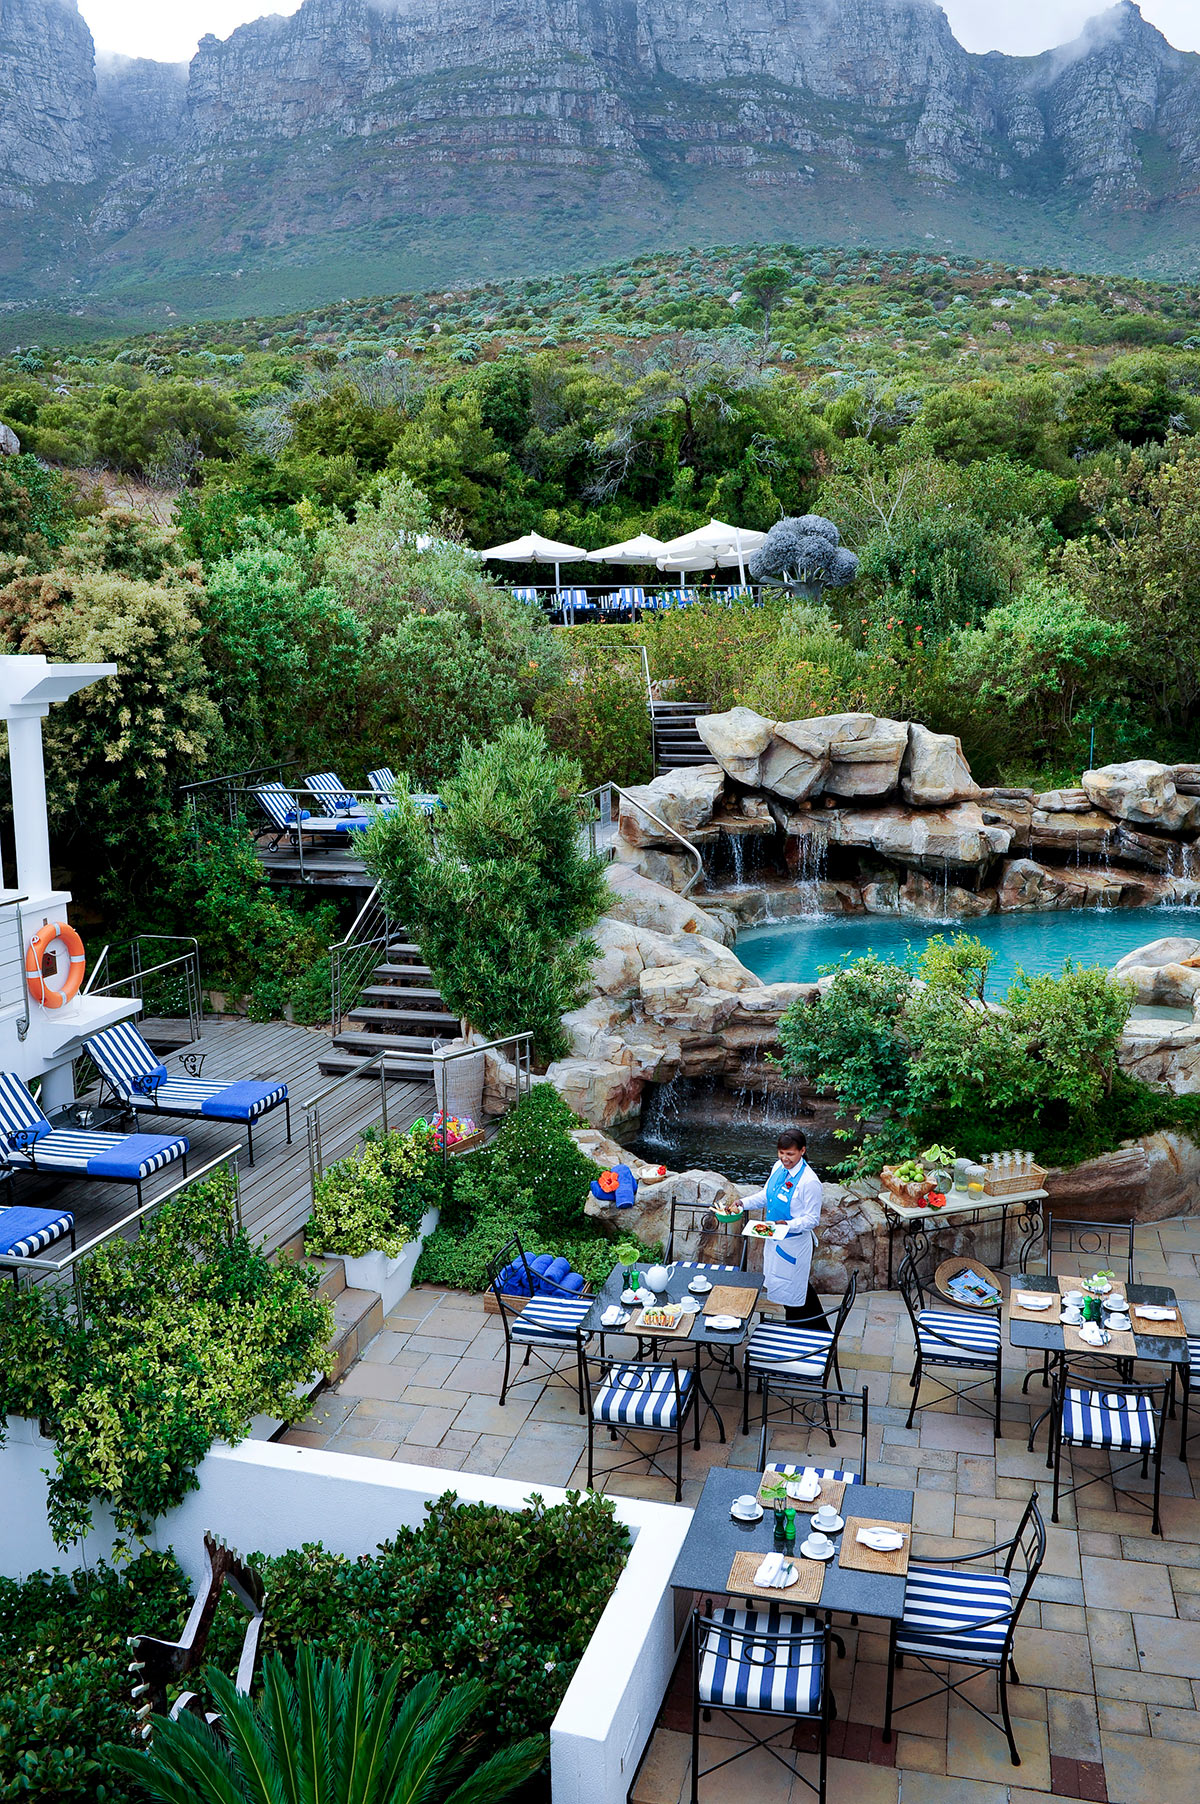 The-Twelve-Apostles-Hotel-and-Spa_The-Café-Grill-_-Rock-Pool.jpg